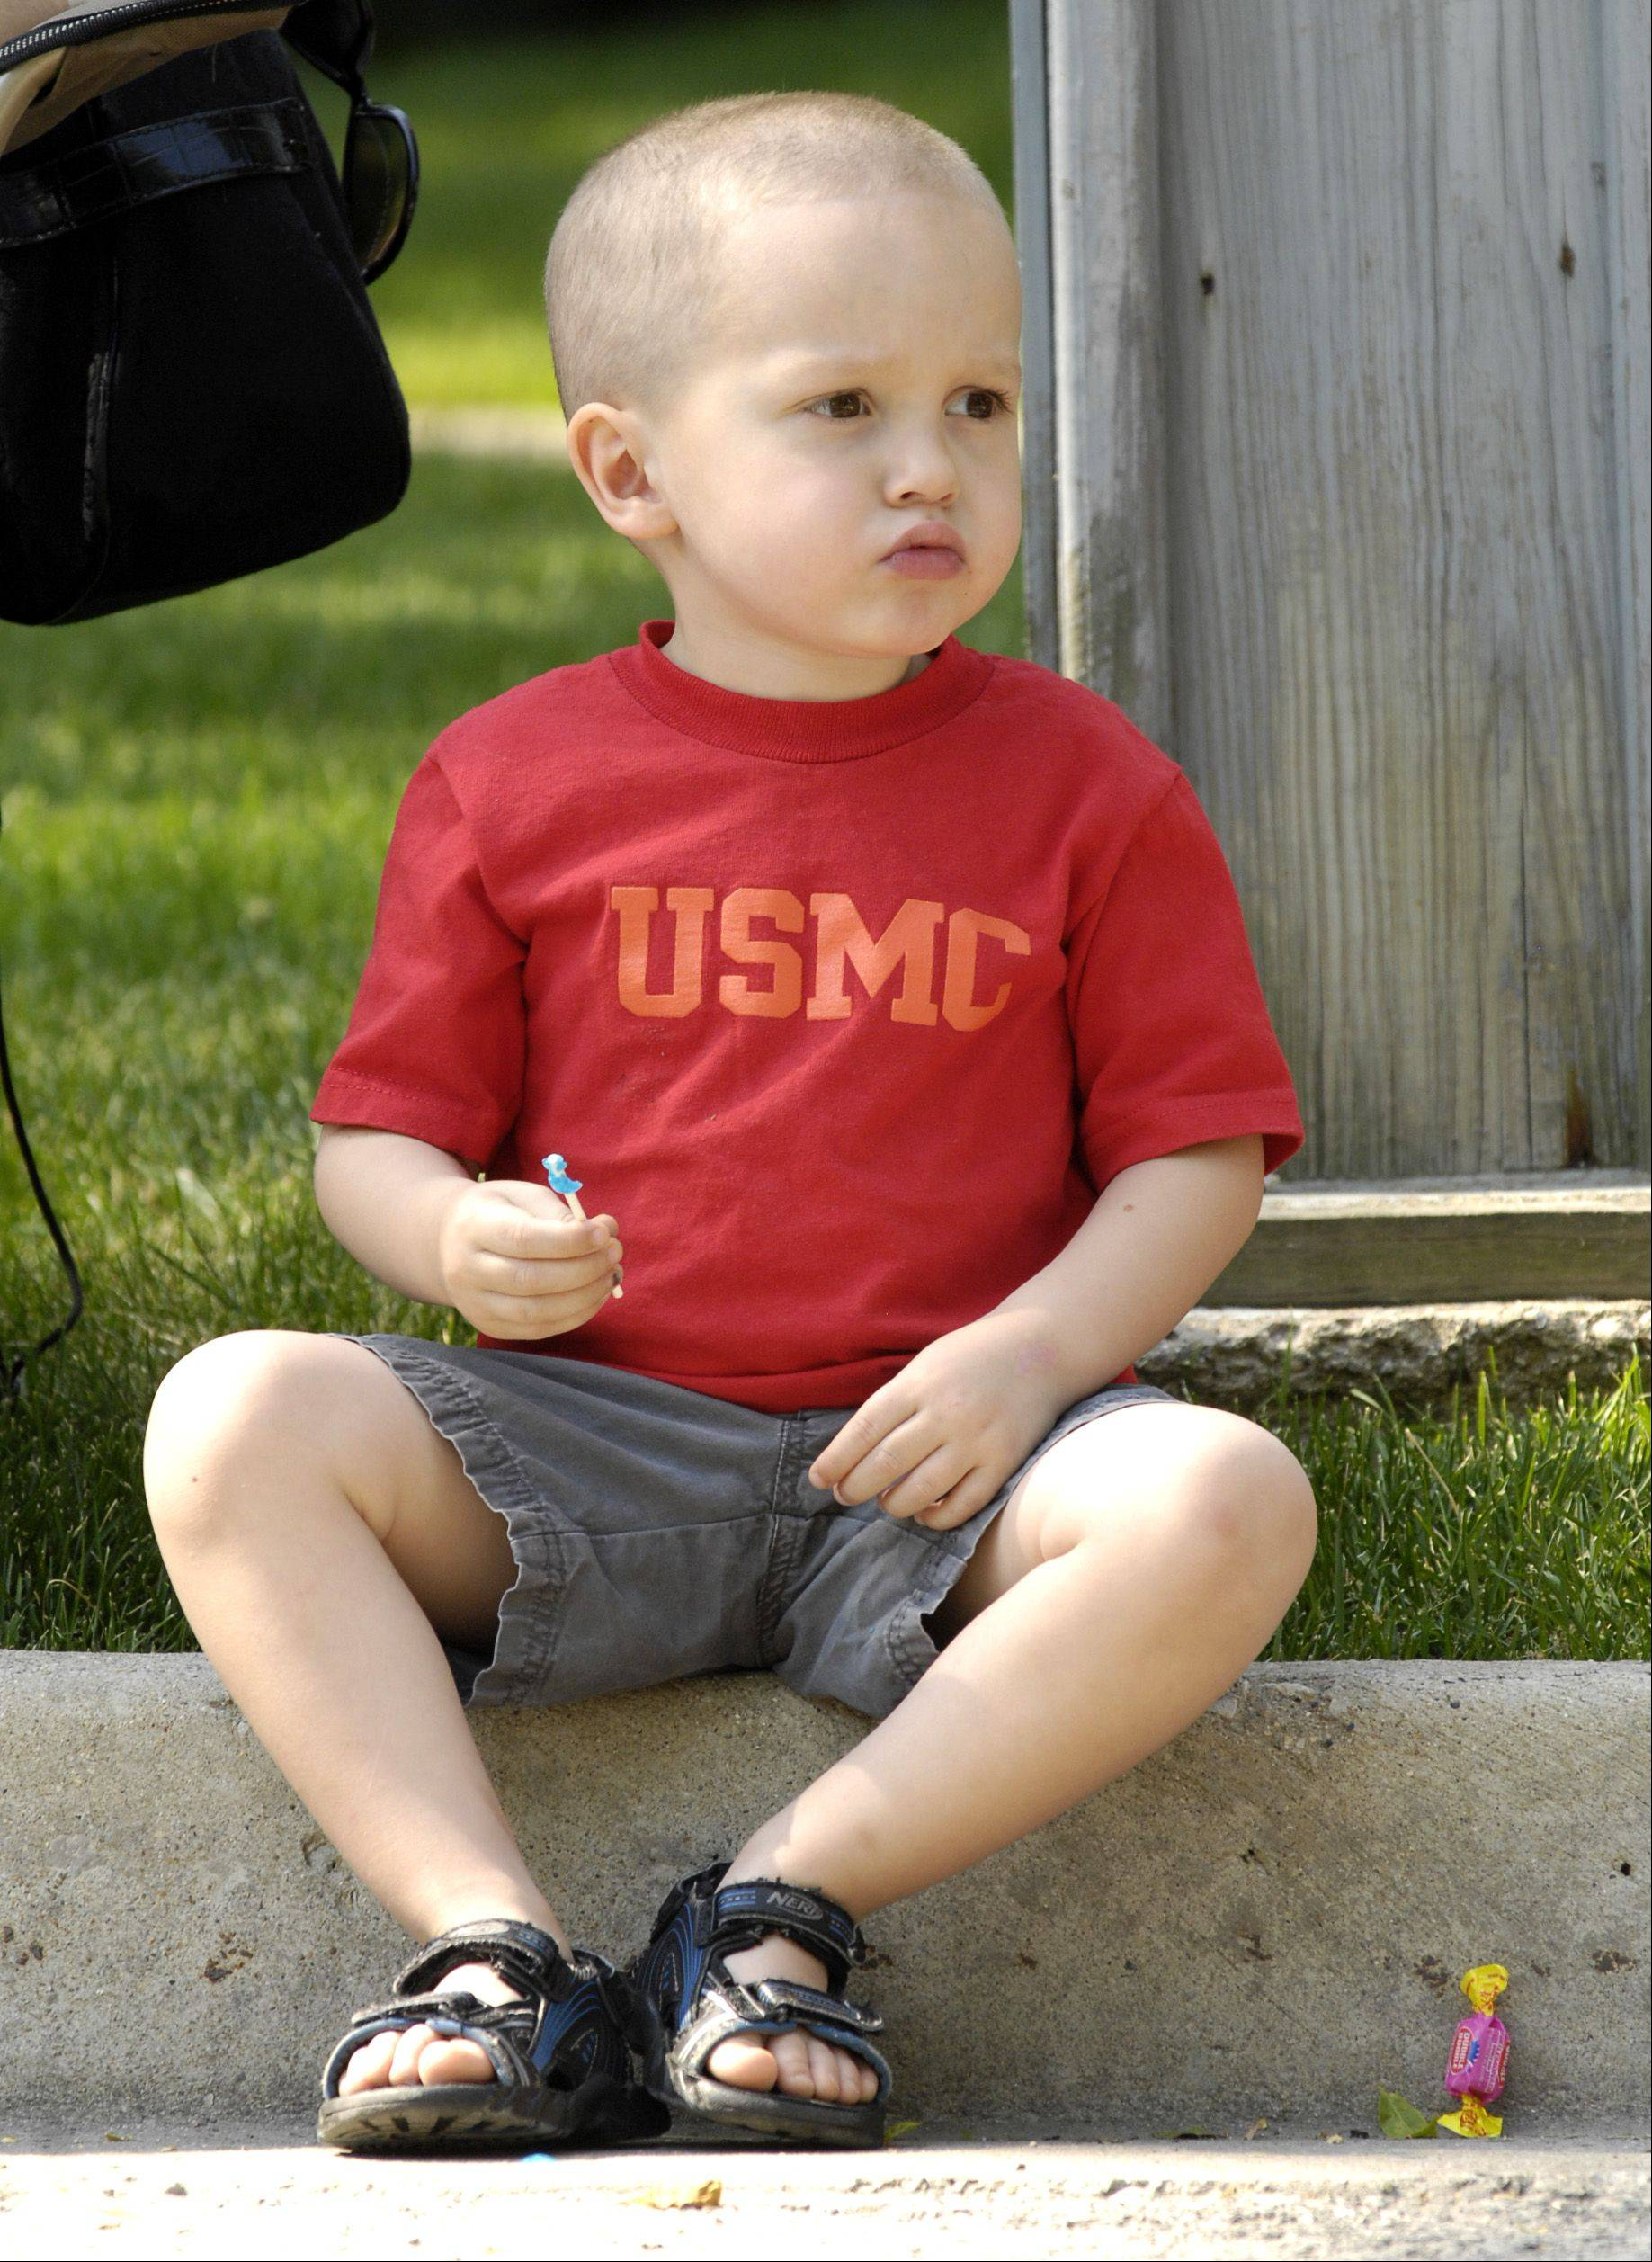 Caleb Cruz, 4 of Itasca, wears a United State Marine Corp shirt to honor his uncle who is serving in the Marines, as he attends the annual Memorial Day parade in Itasca on Monday.